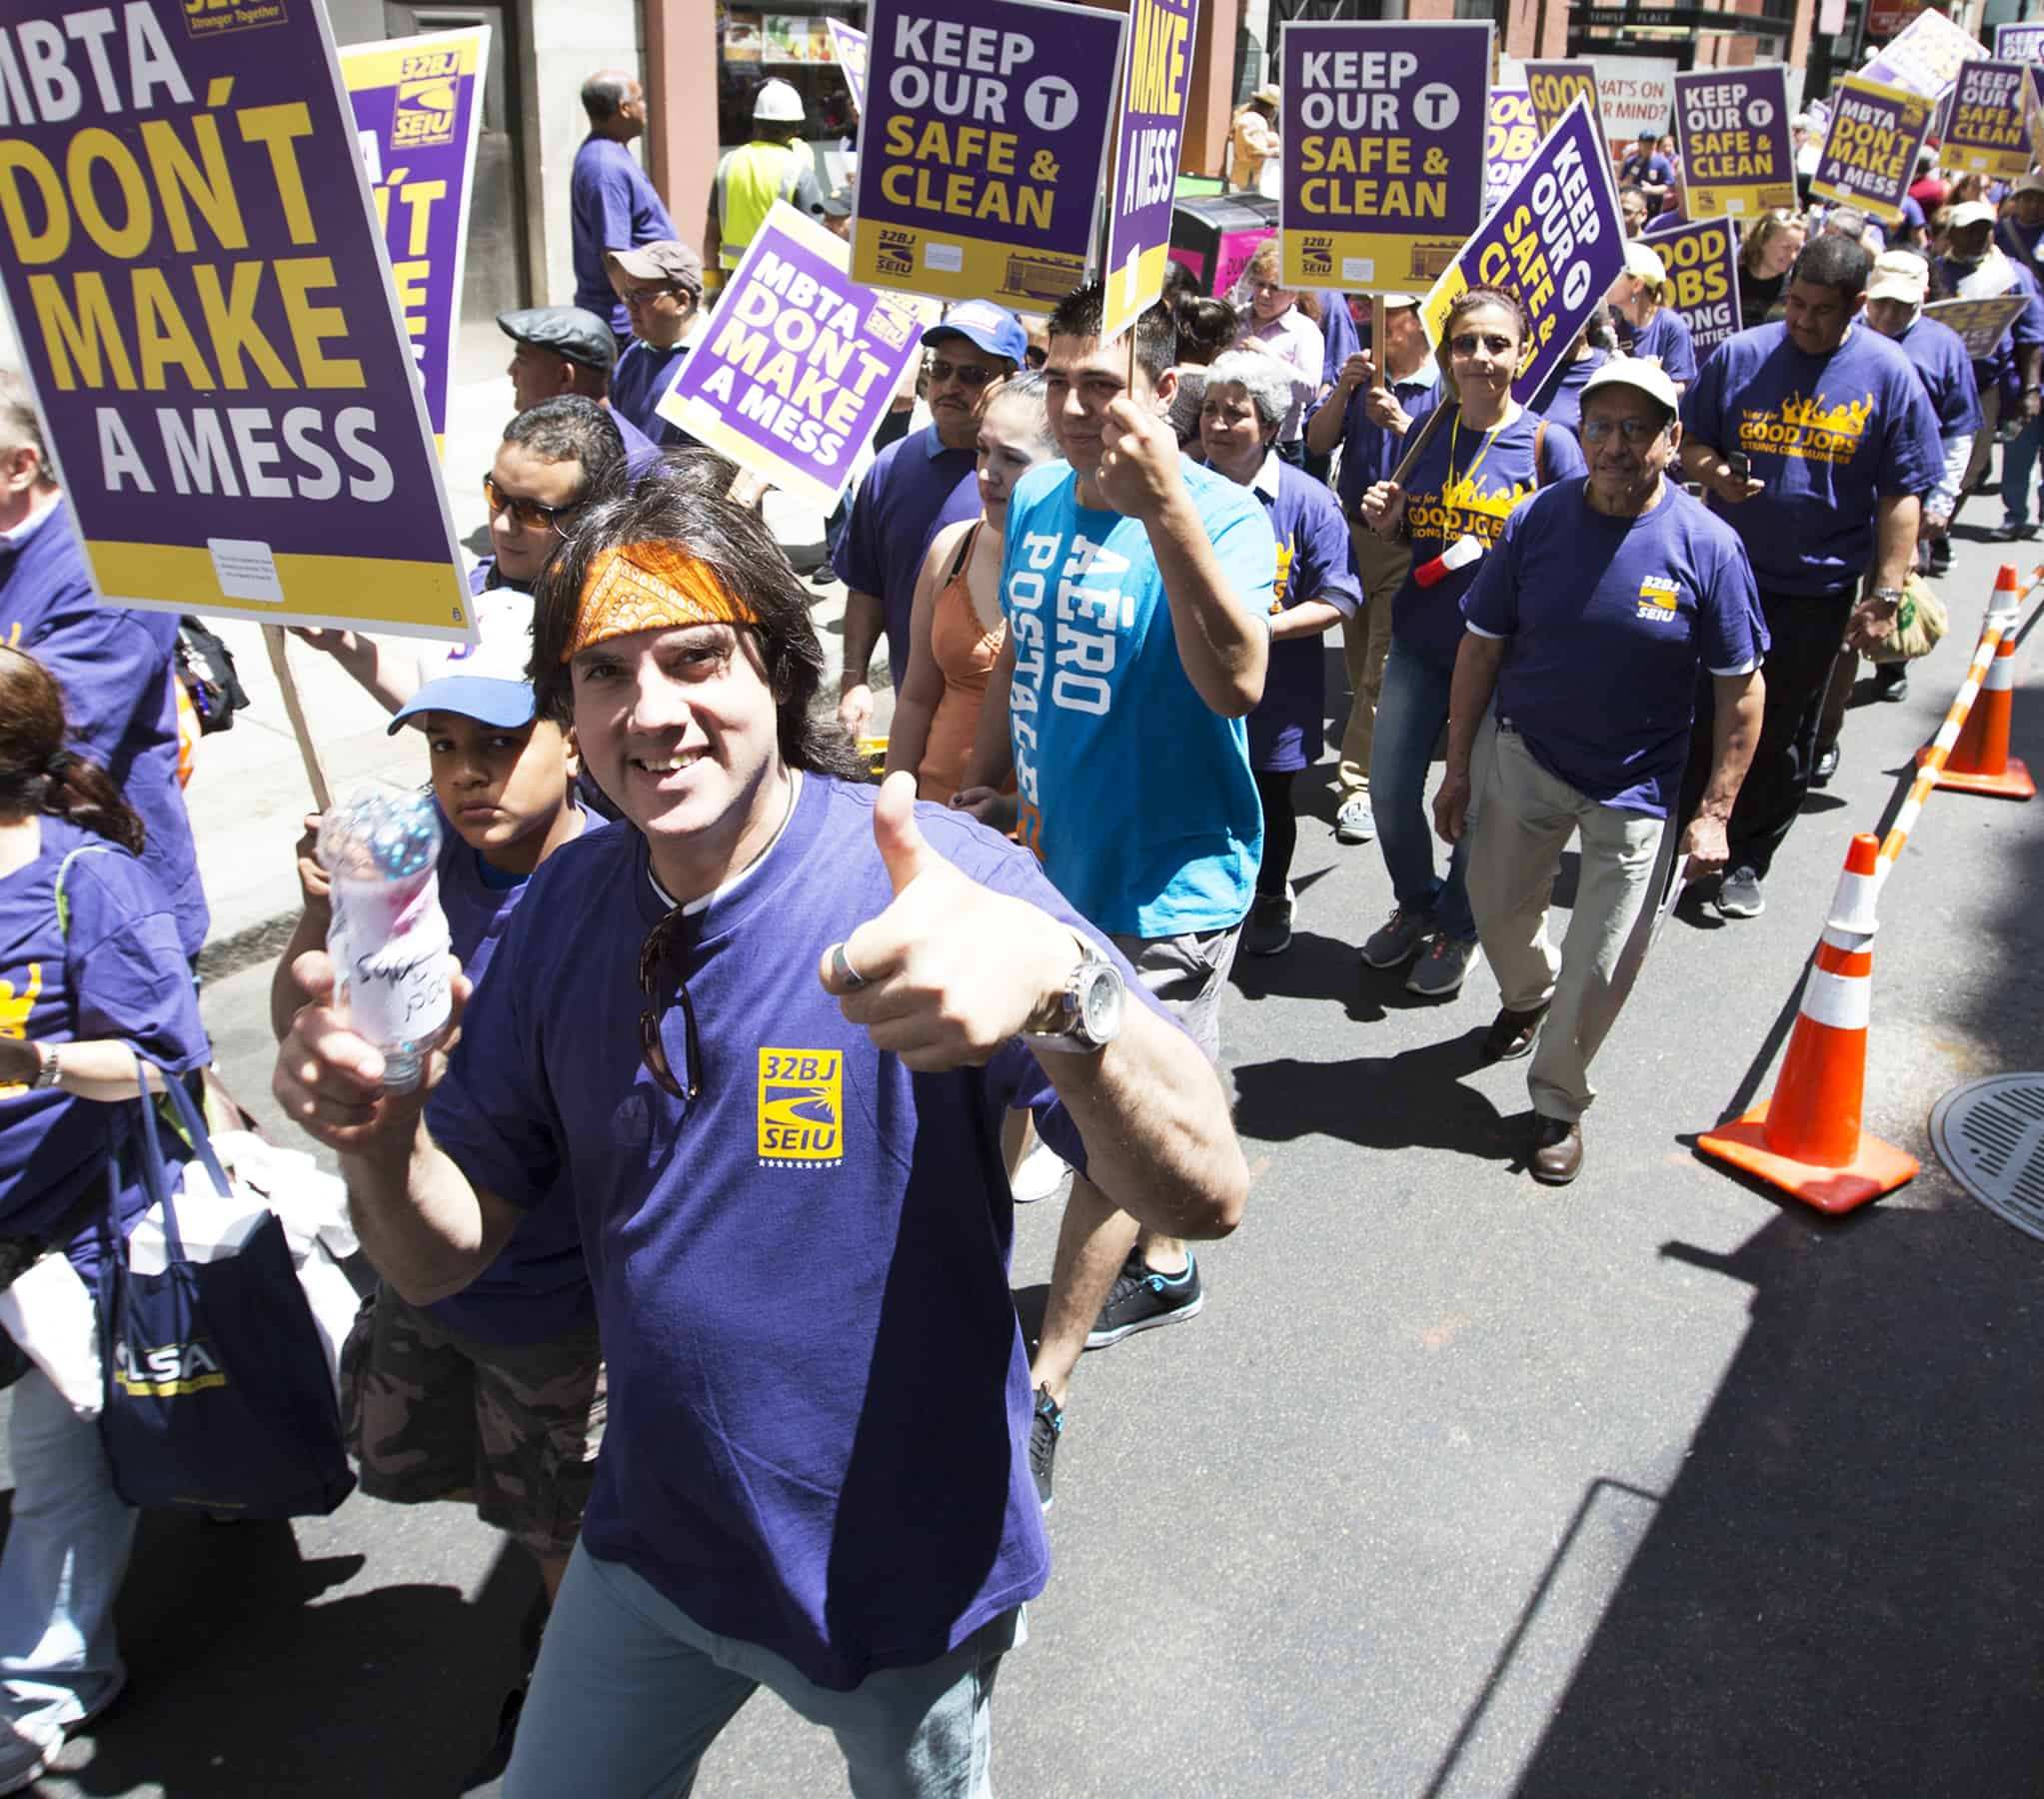 32BJ SEIU District 615 members at a Justice for Janitors March and Rally in Boston, Massachusetts on Saturday, June 21, 2014. Rose Lincoln Photo